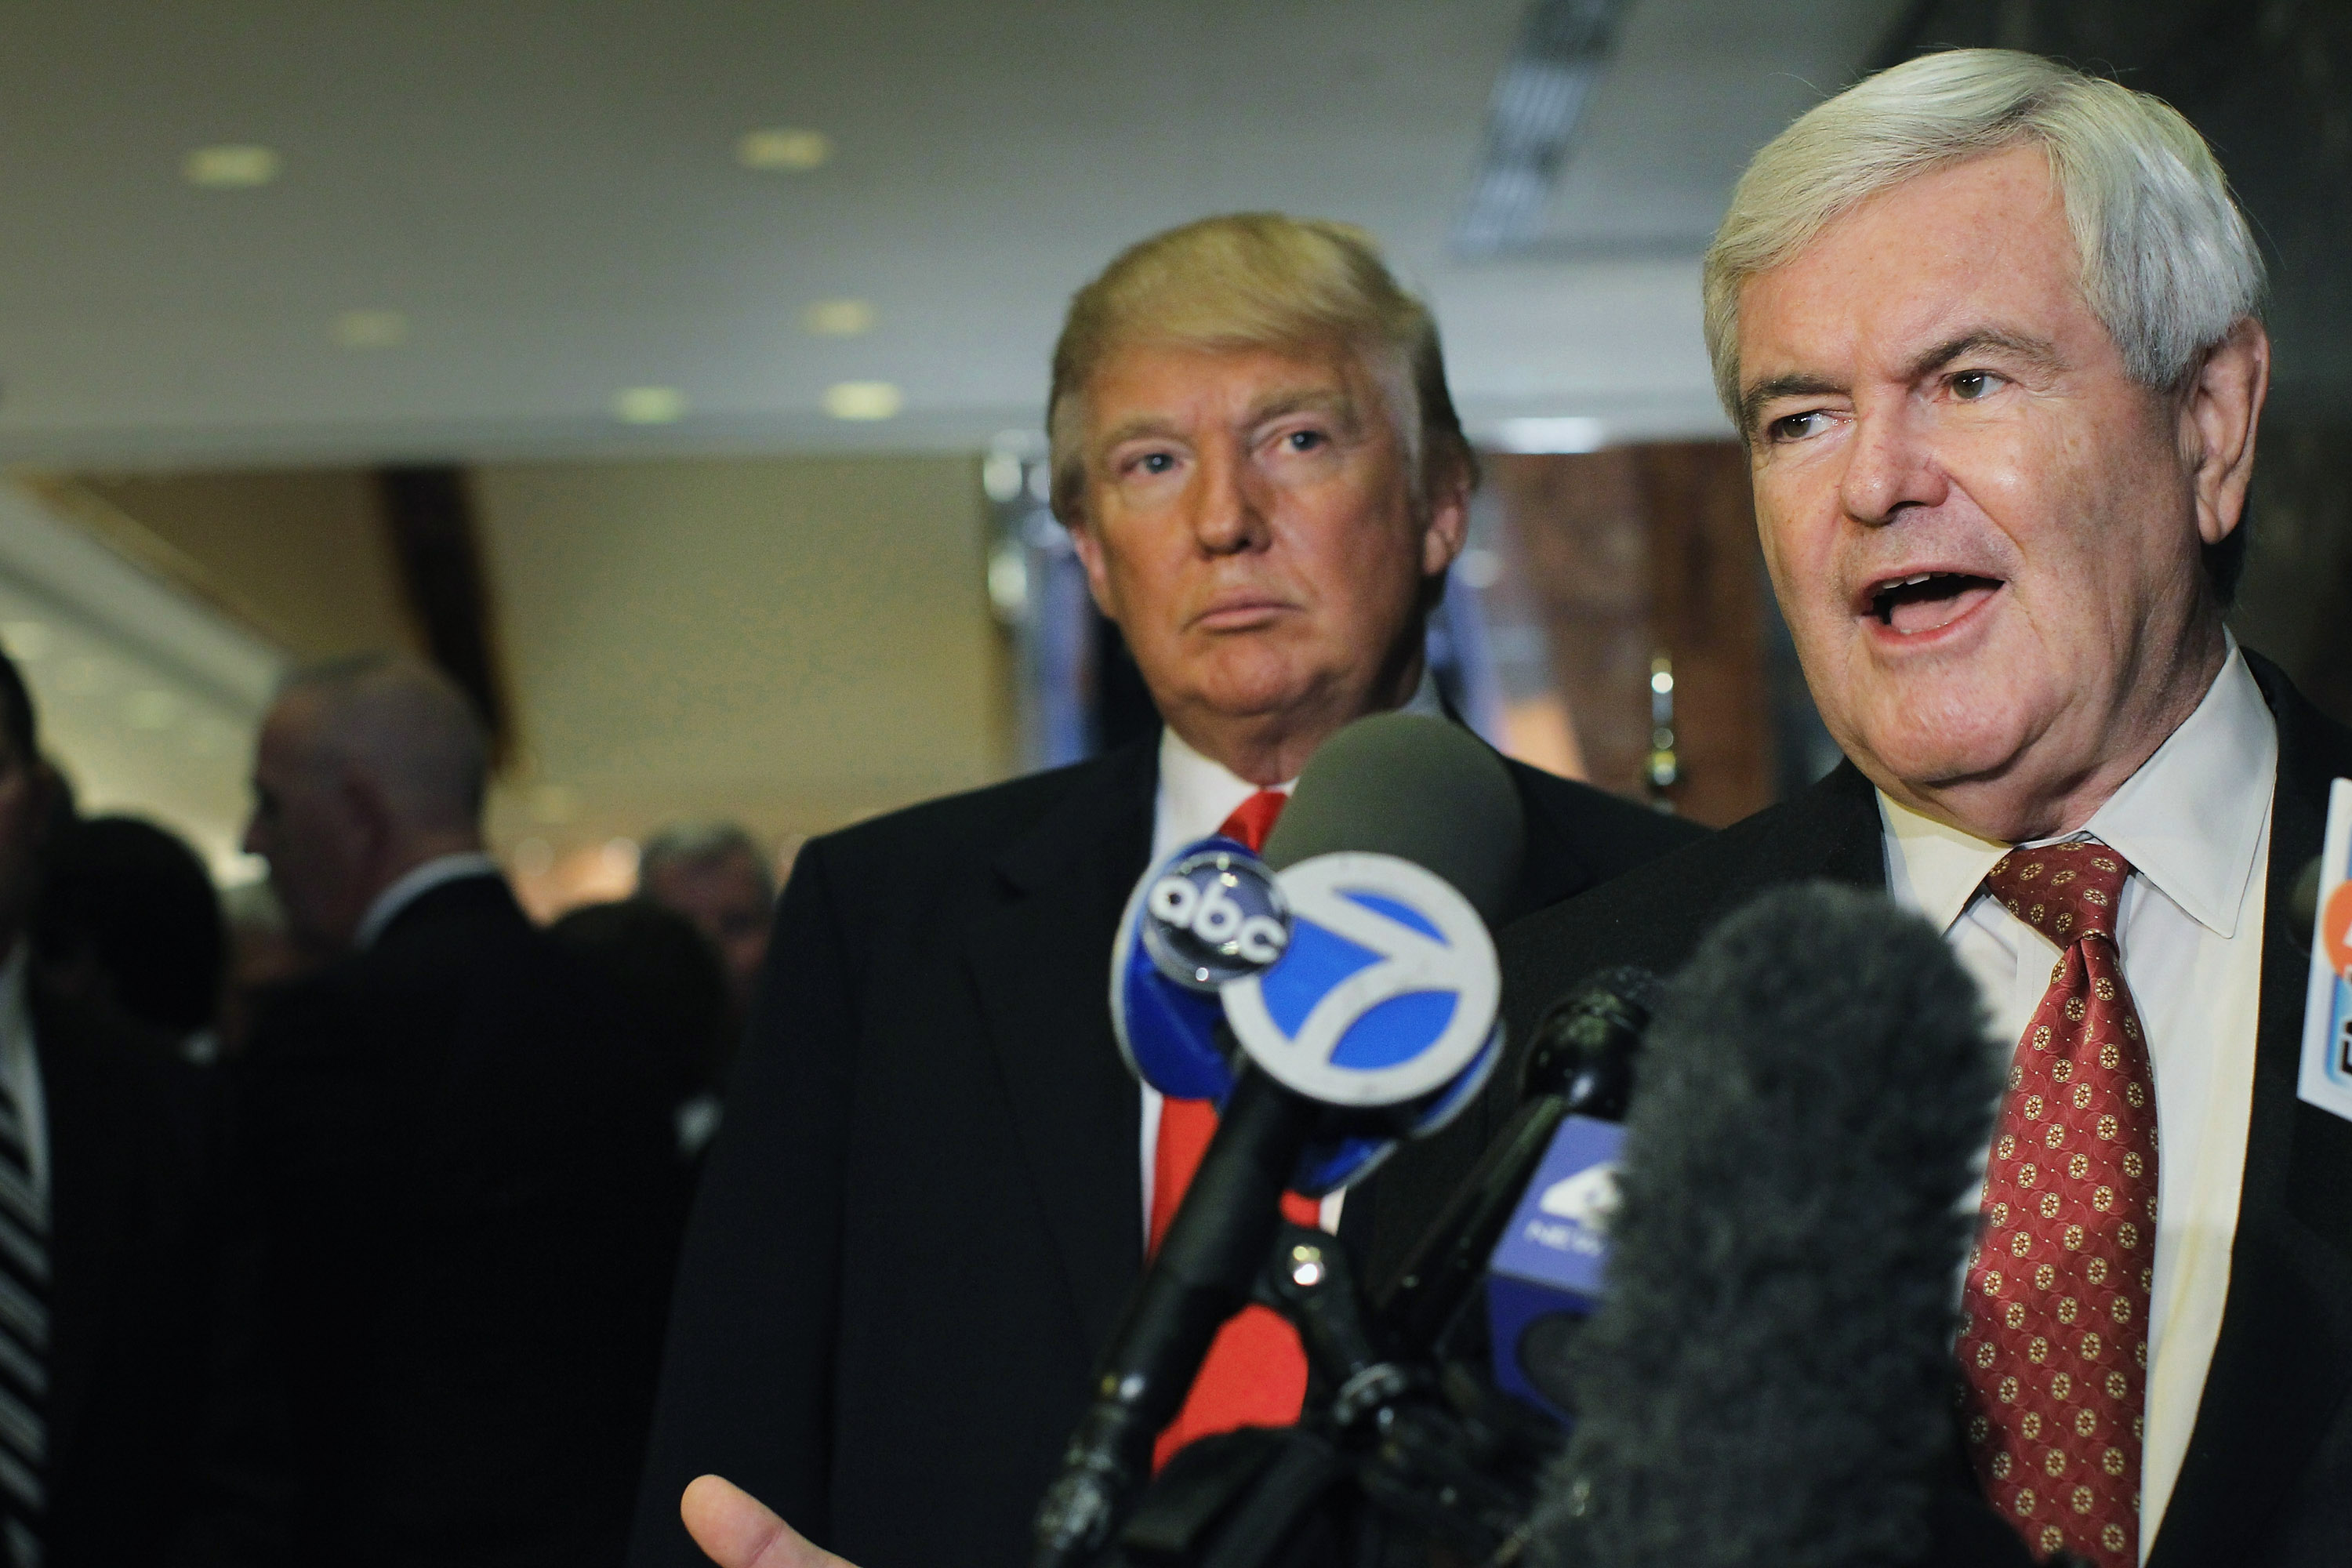 Then-Republican presidential nominee hopeful Newt Gingrich speaking to the media after a meeting with Donald Trump on December 5, 2011 in New York City.